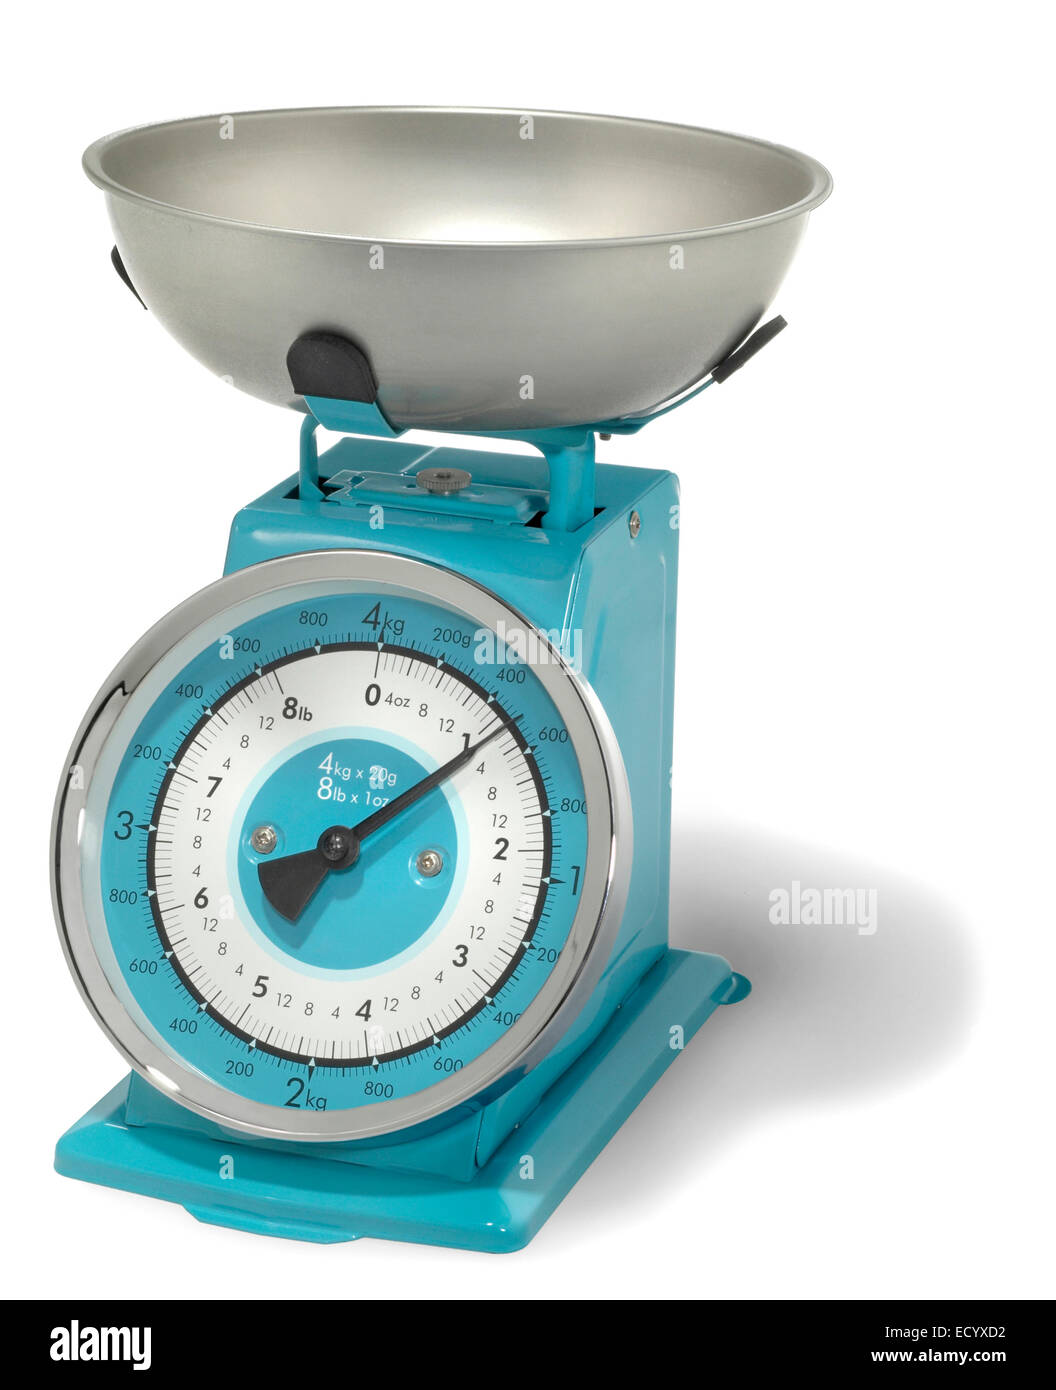 Retro Weight Scale Stock Photos & Retro Weight Scale Stock Images ...